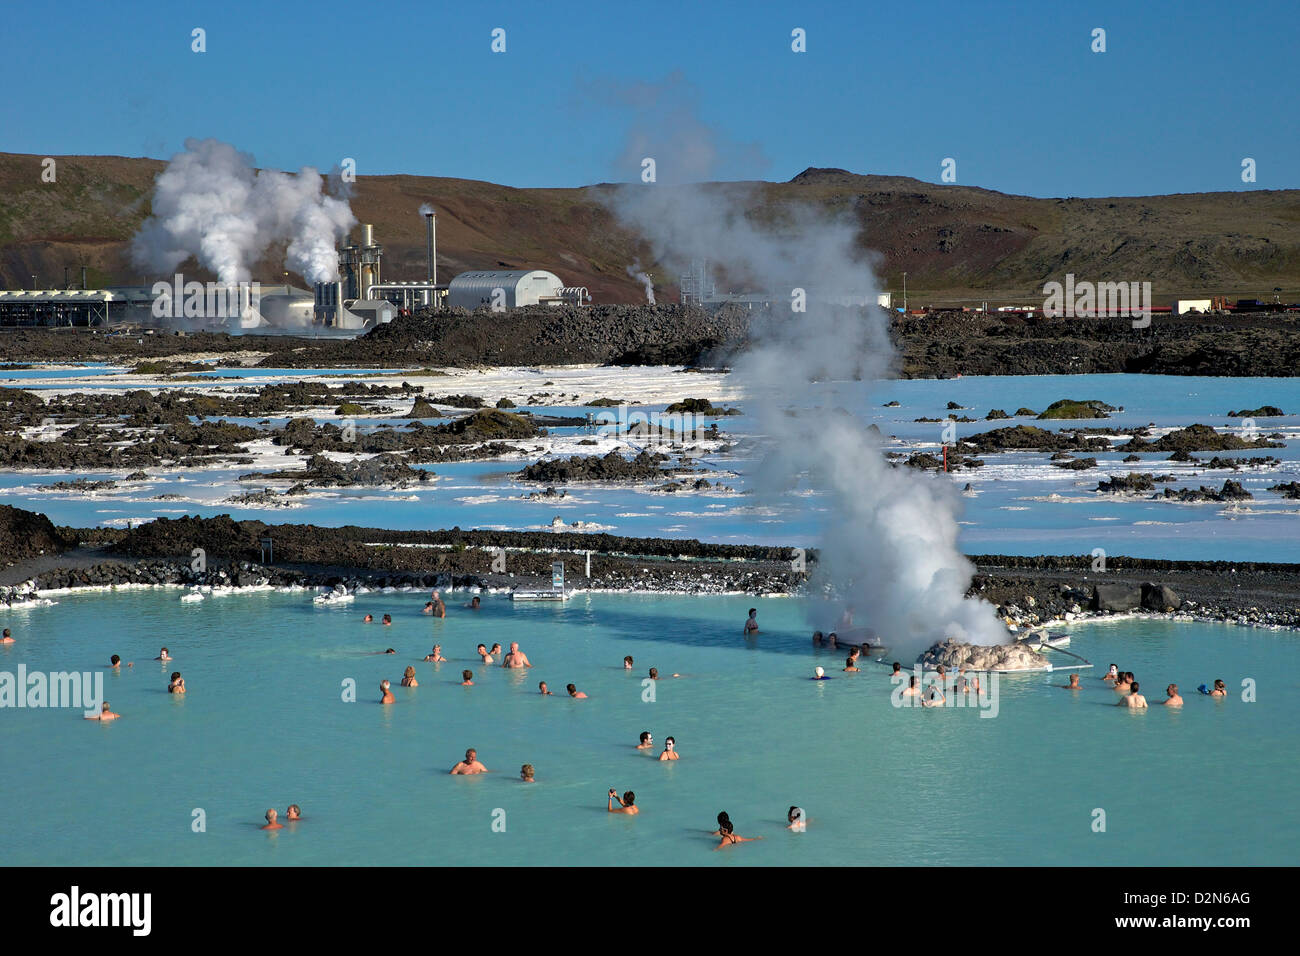 Outdoor geothermal swimming pool and power plant at the Blue Lagoon, Iceland, Polar Regions - Stock Image